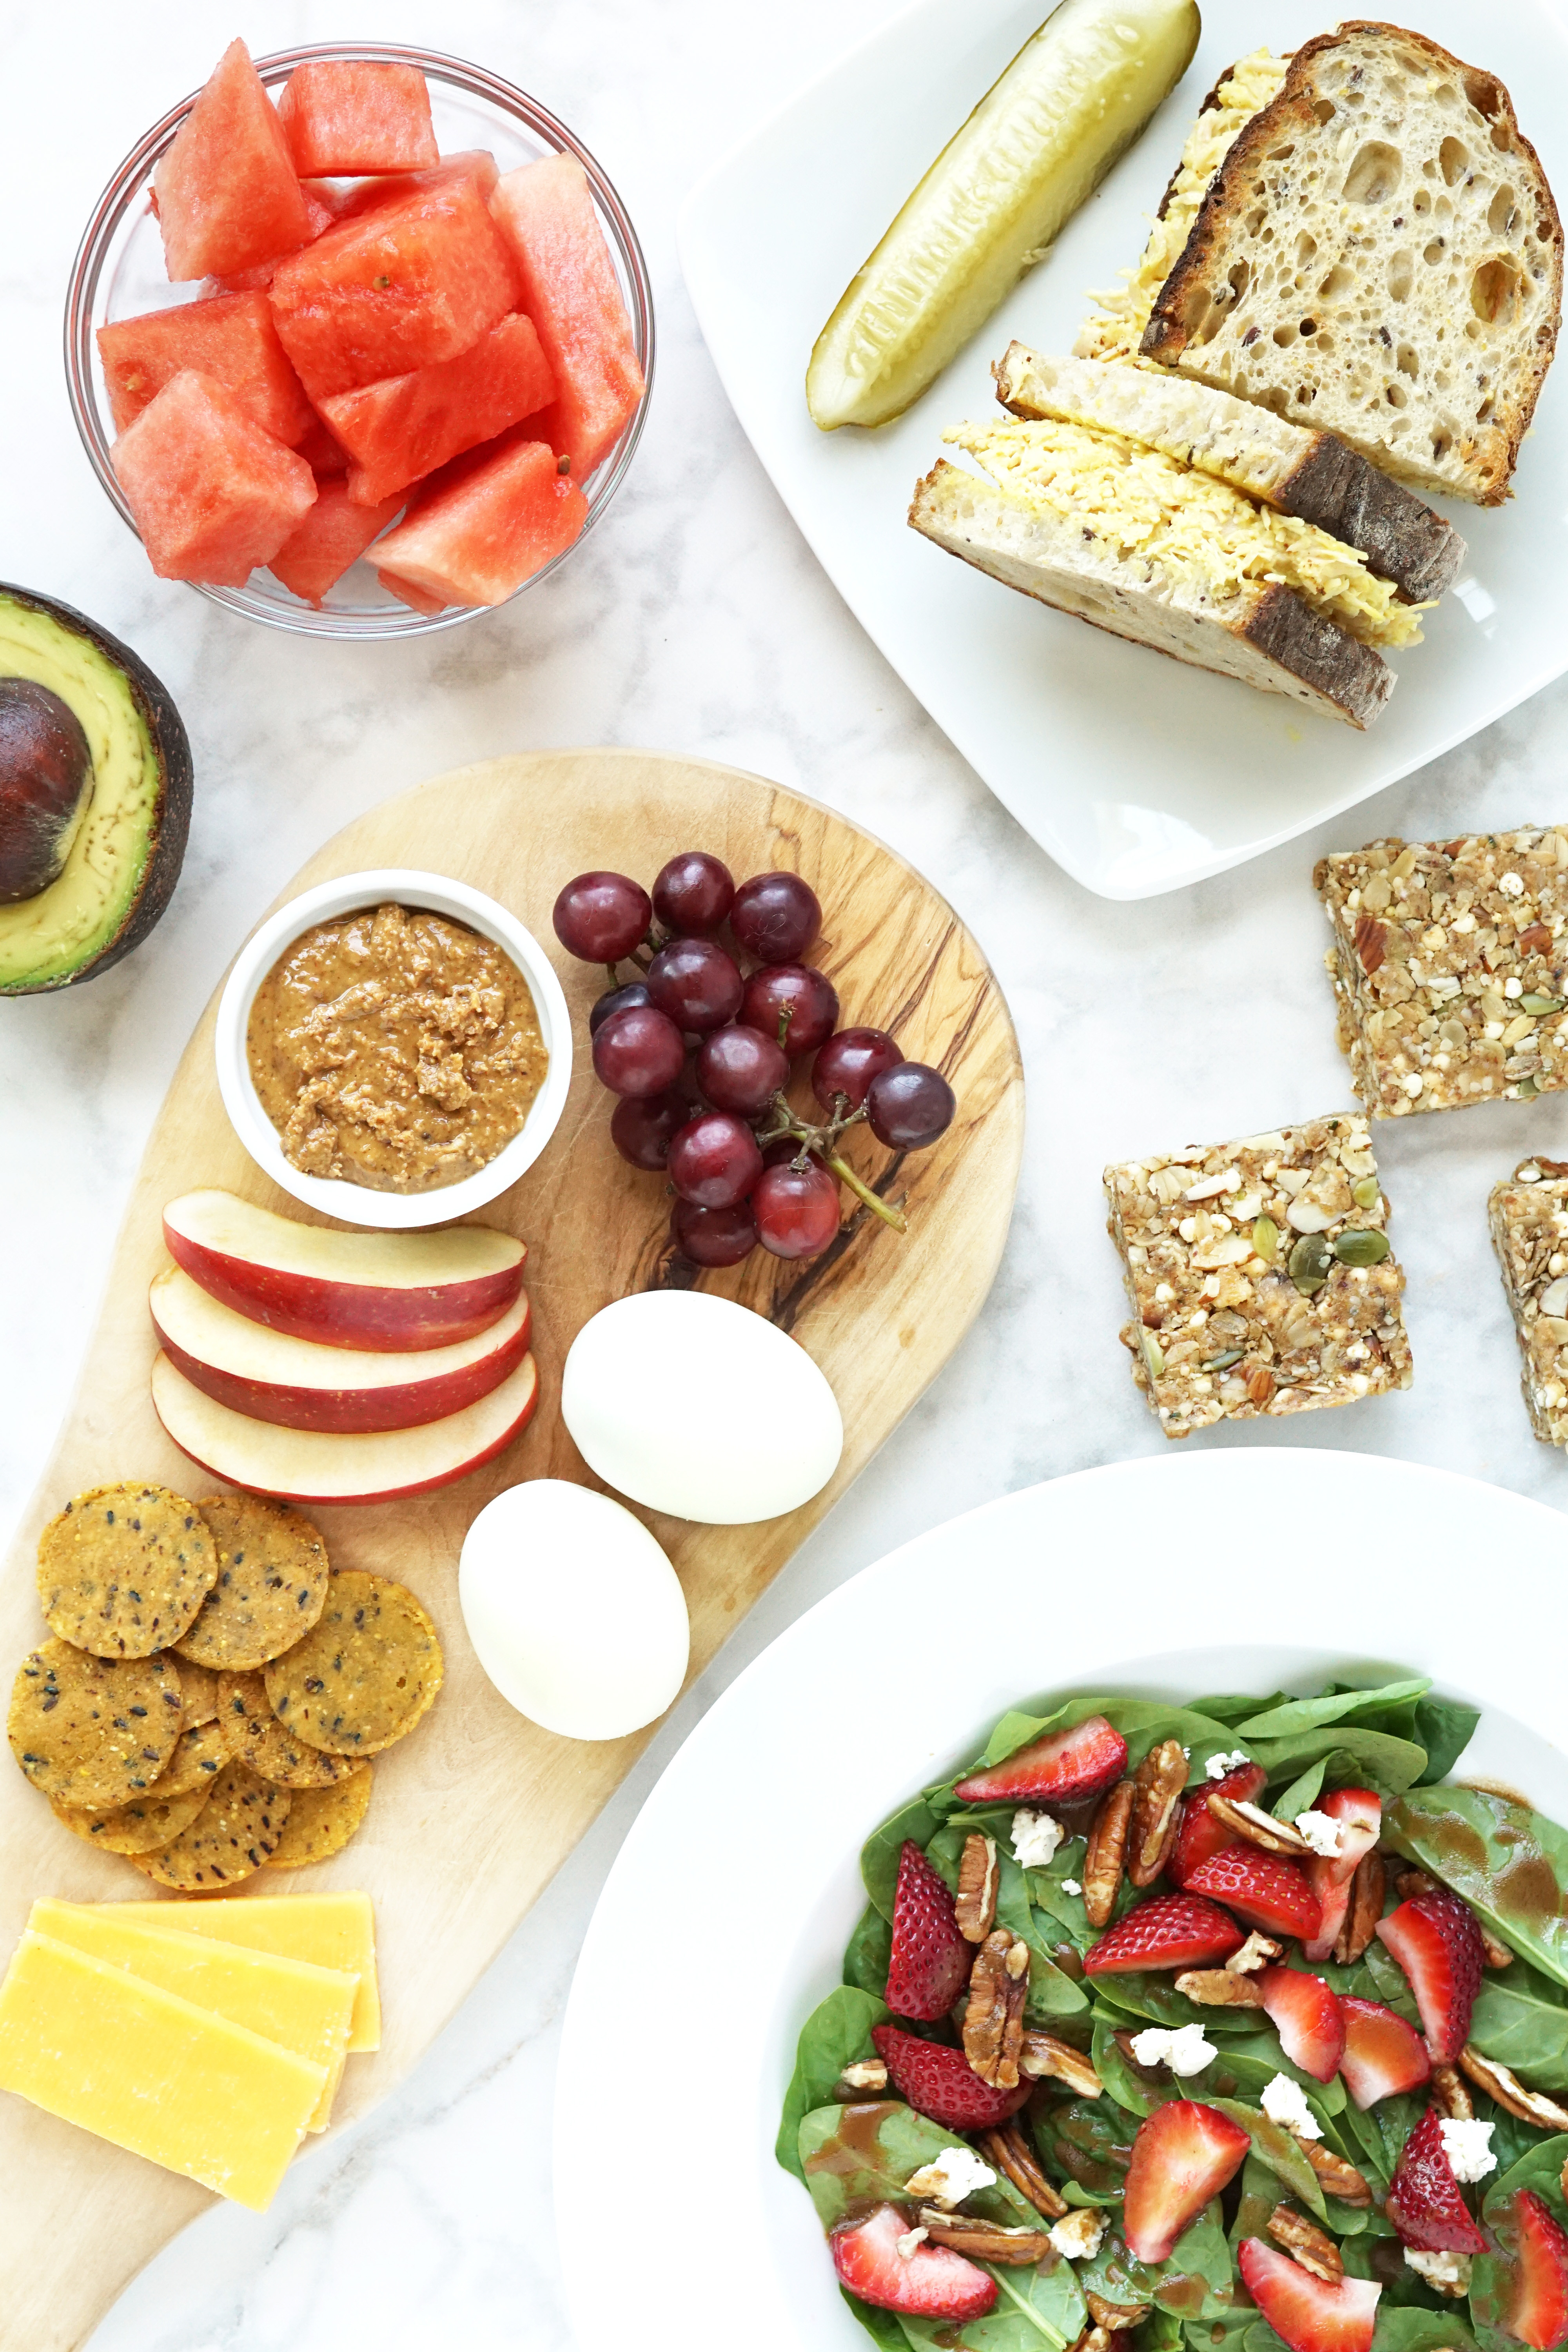 Healthy To Go Lunches  Healthy The Go Lunches & Snacks – EATON